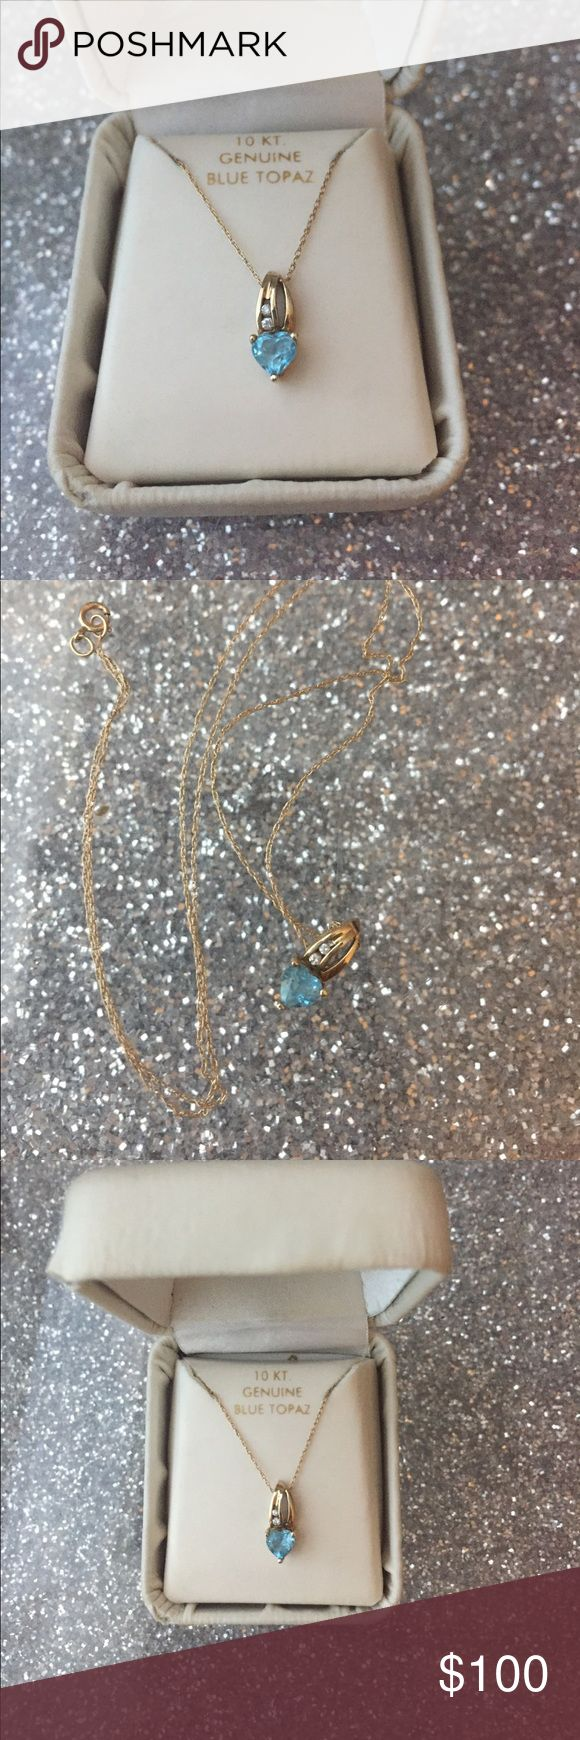 10kt Gold and Blue Topaz Necklace Delicate 10 my gold necklace with a genuine blue topaz and cubic zirconium detailing. The chair is incredibly delicate and stunning. Jewelry Necklaces